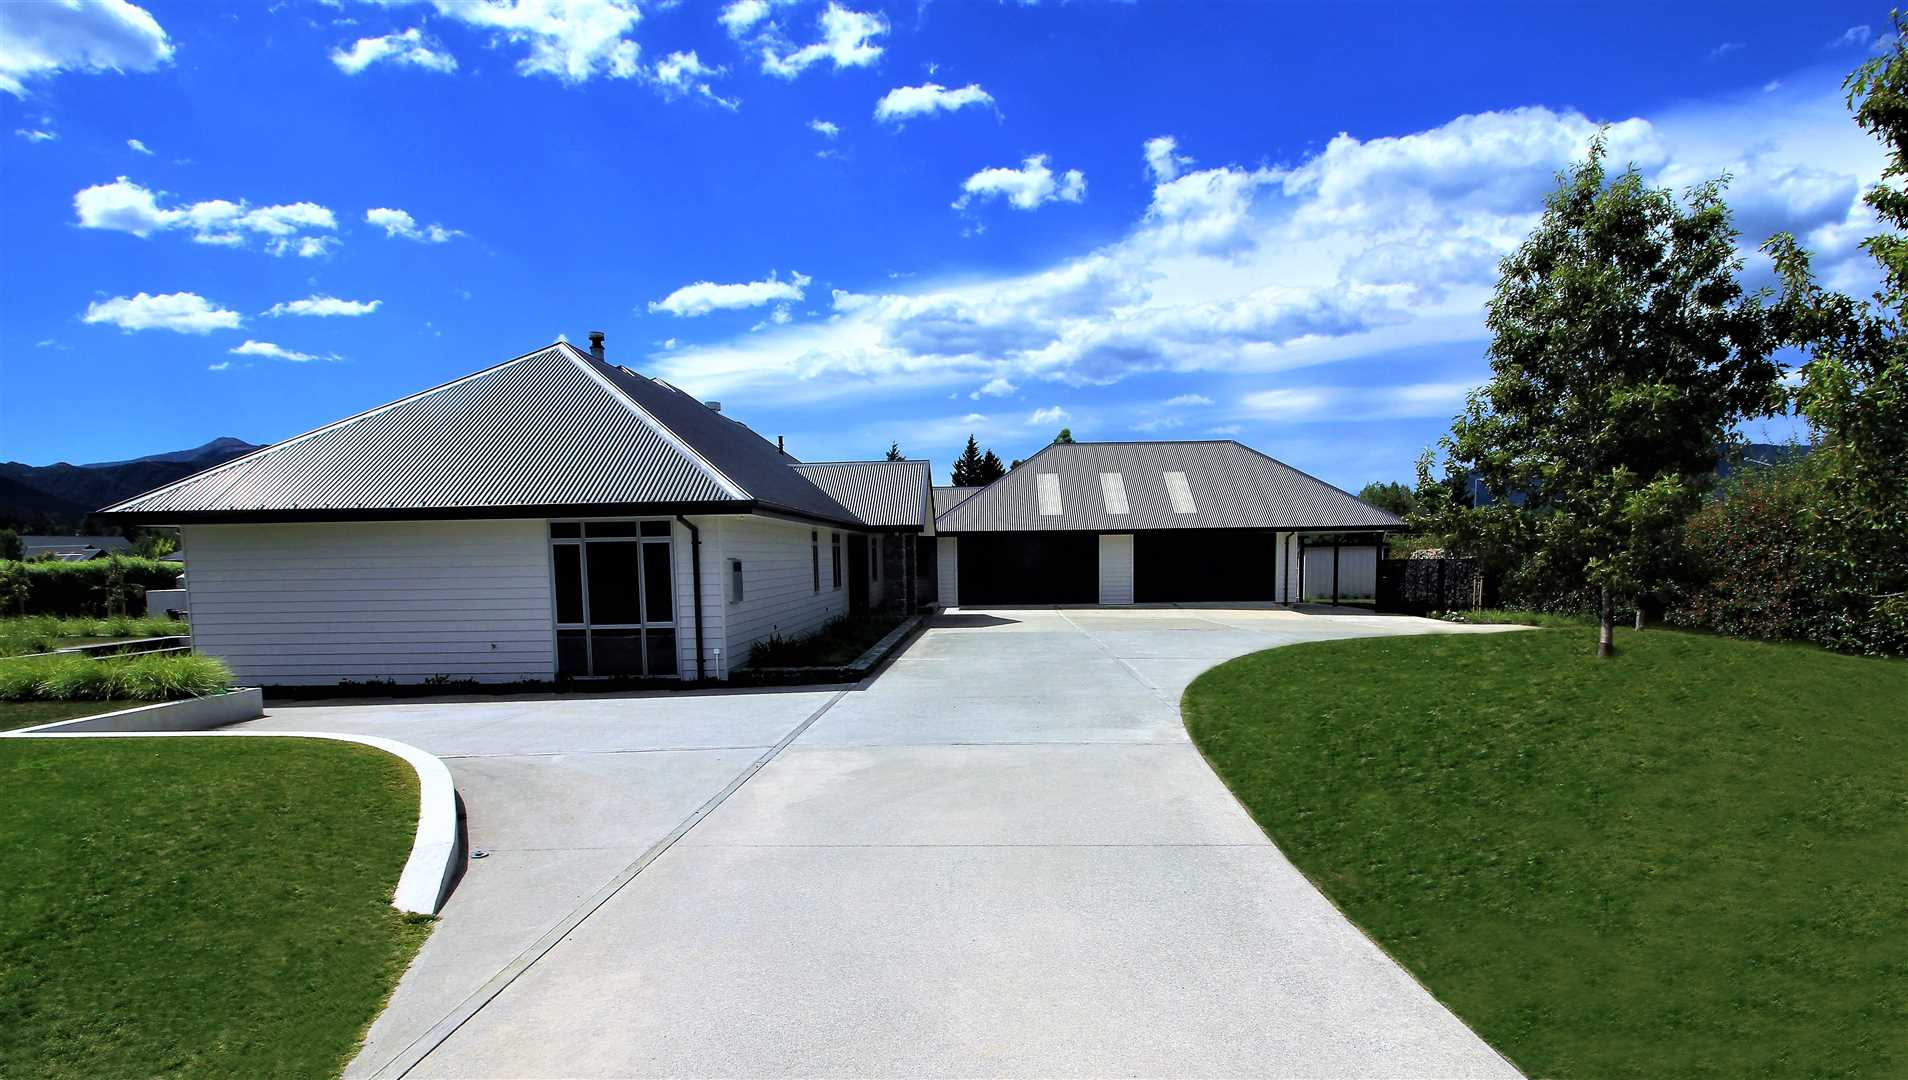 Exceptional Home - Exceptional Value!